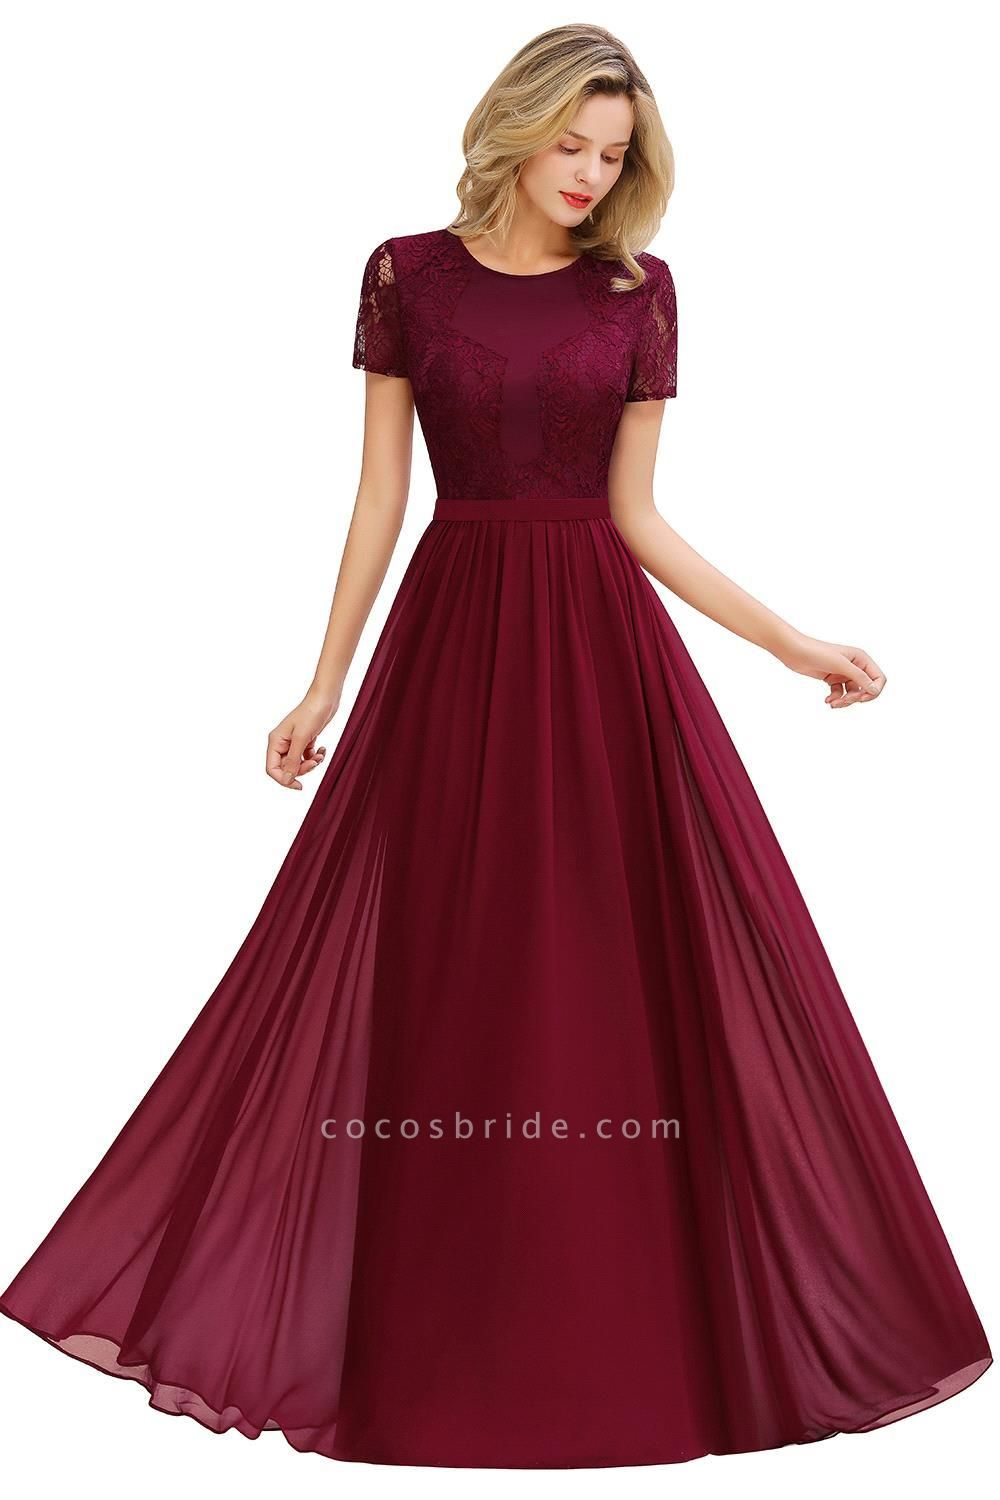 Amazing Chiffon A-line Evening Dress